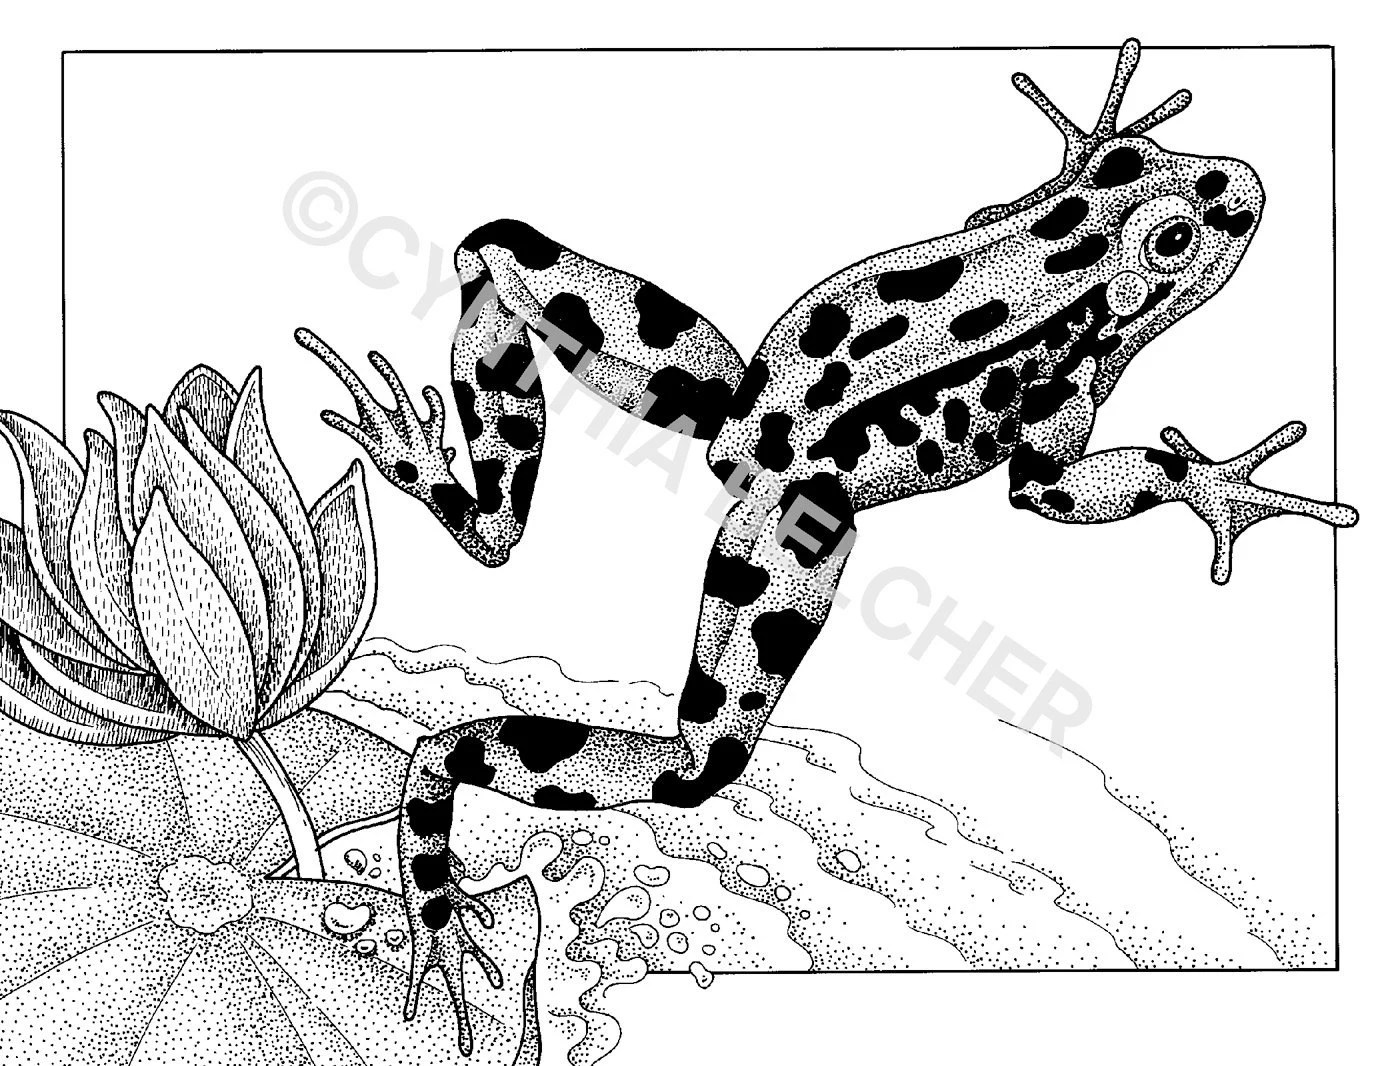 Pen and Ink Drawing of a Jumping Leopard Frog by ARTSYwildlife